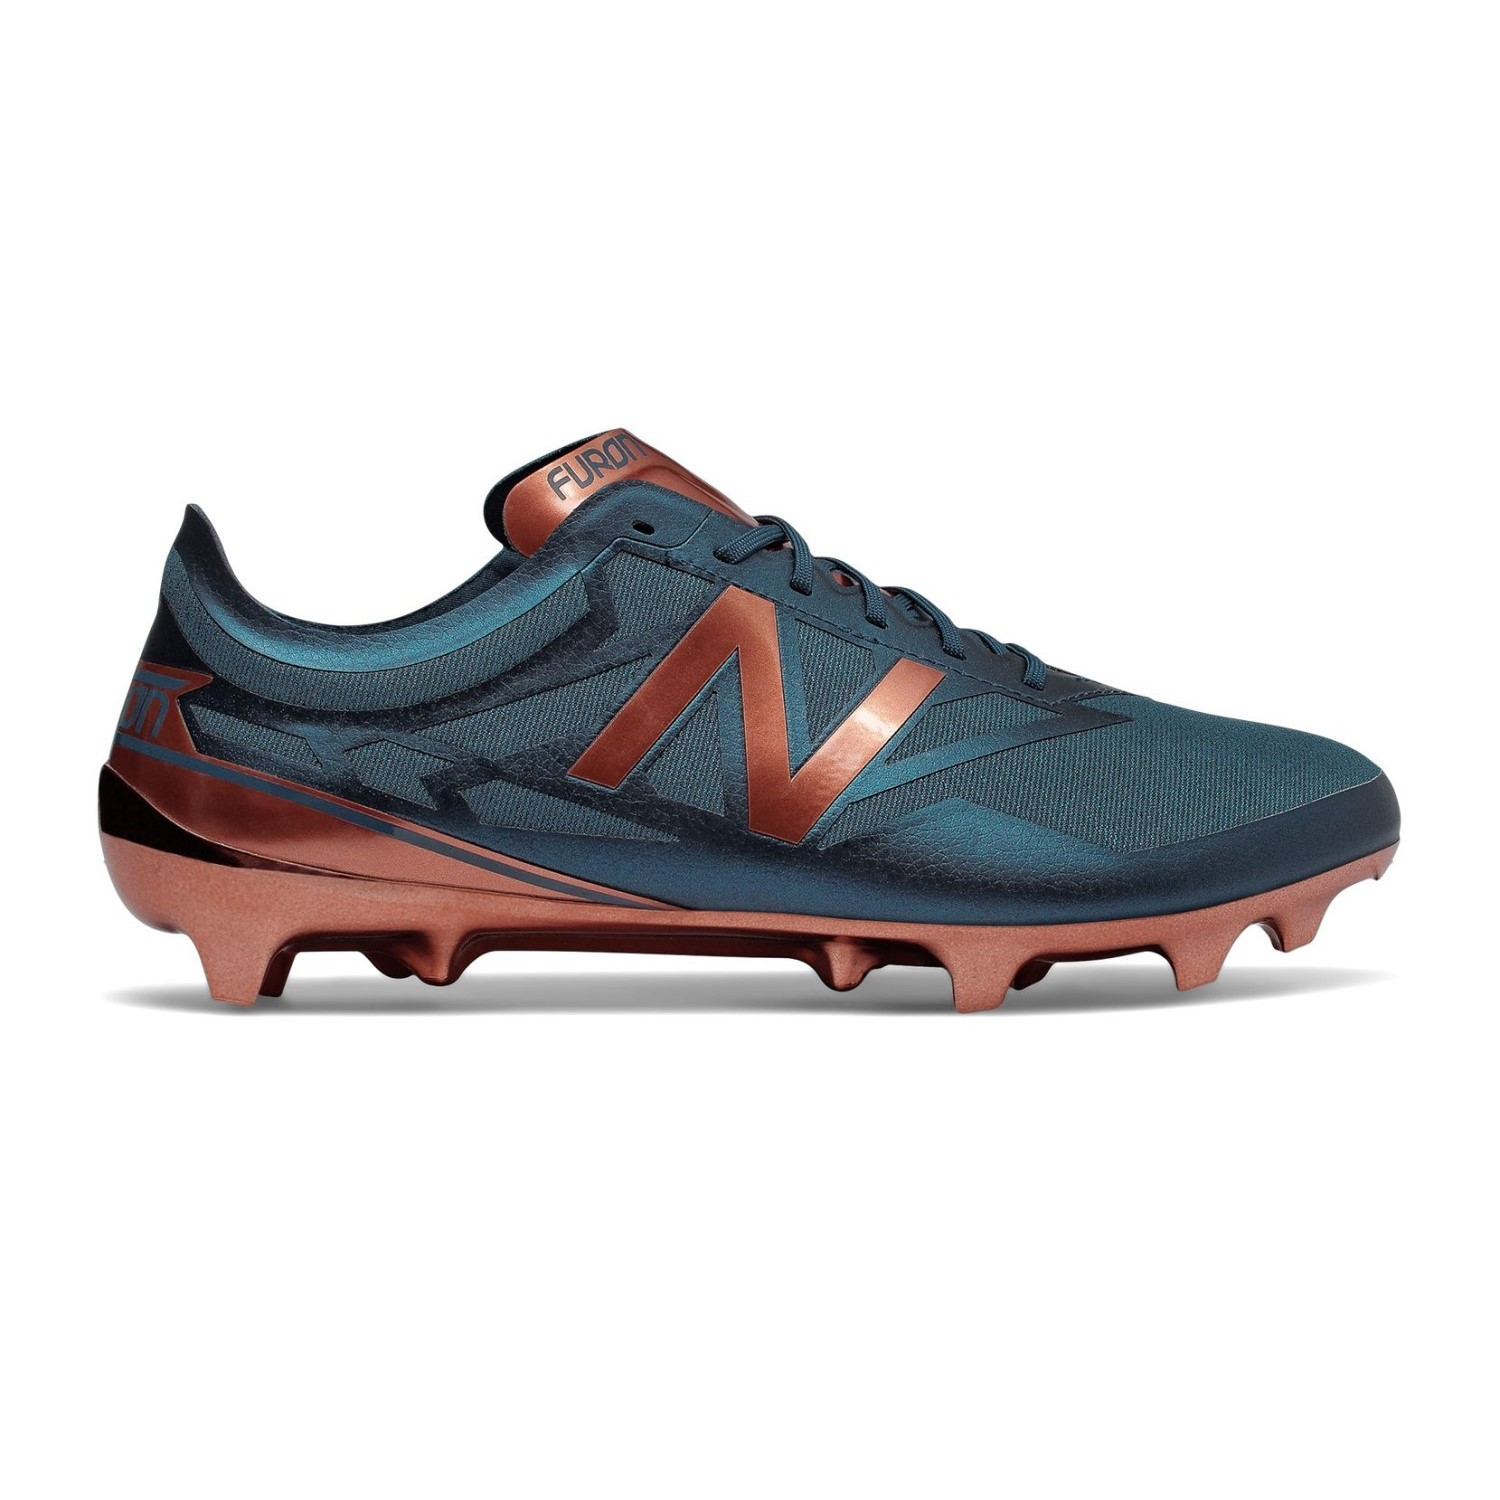 New Balance Furon 3.0 Conduction Pack FG - Mens Football Boots - North  Sea Copper e183cad0736b